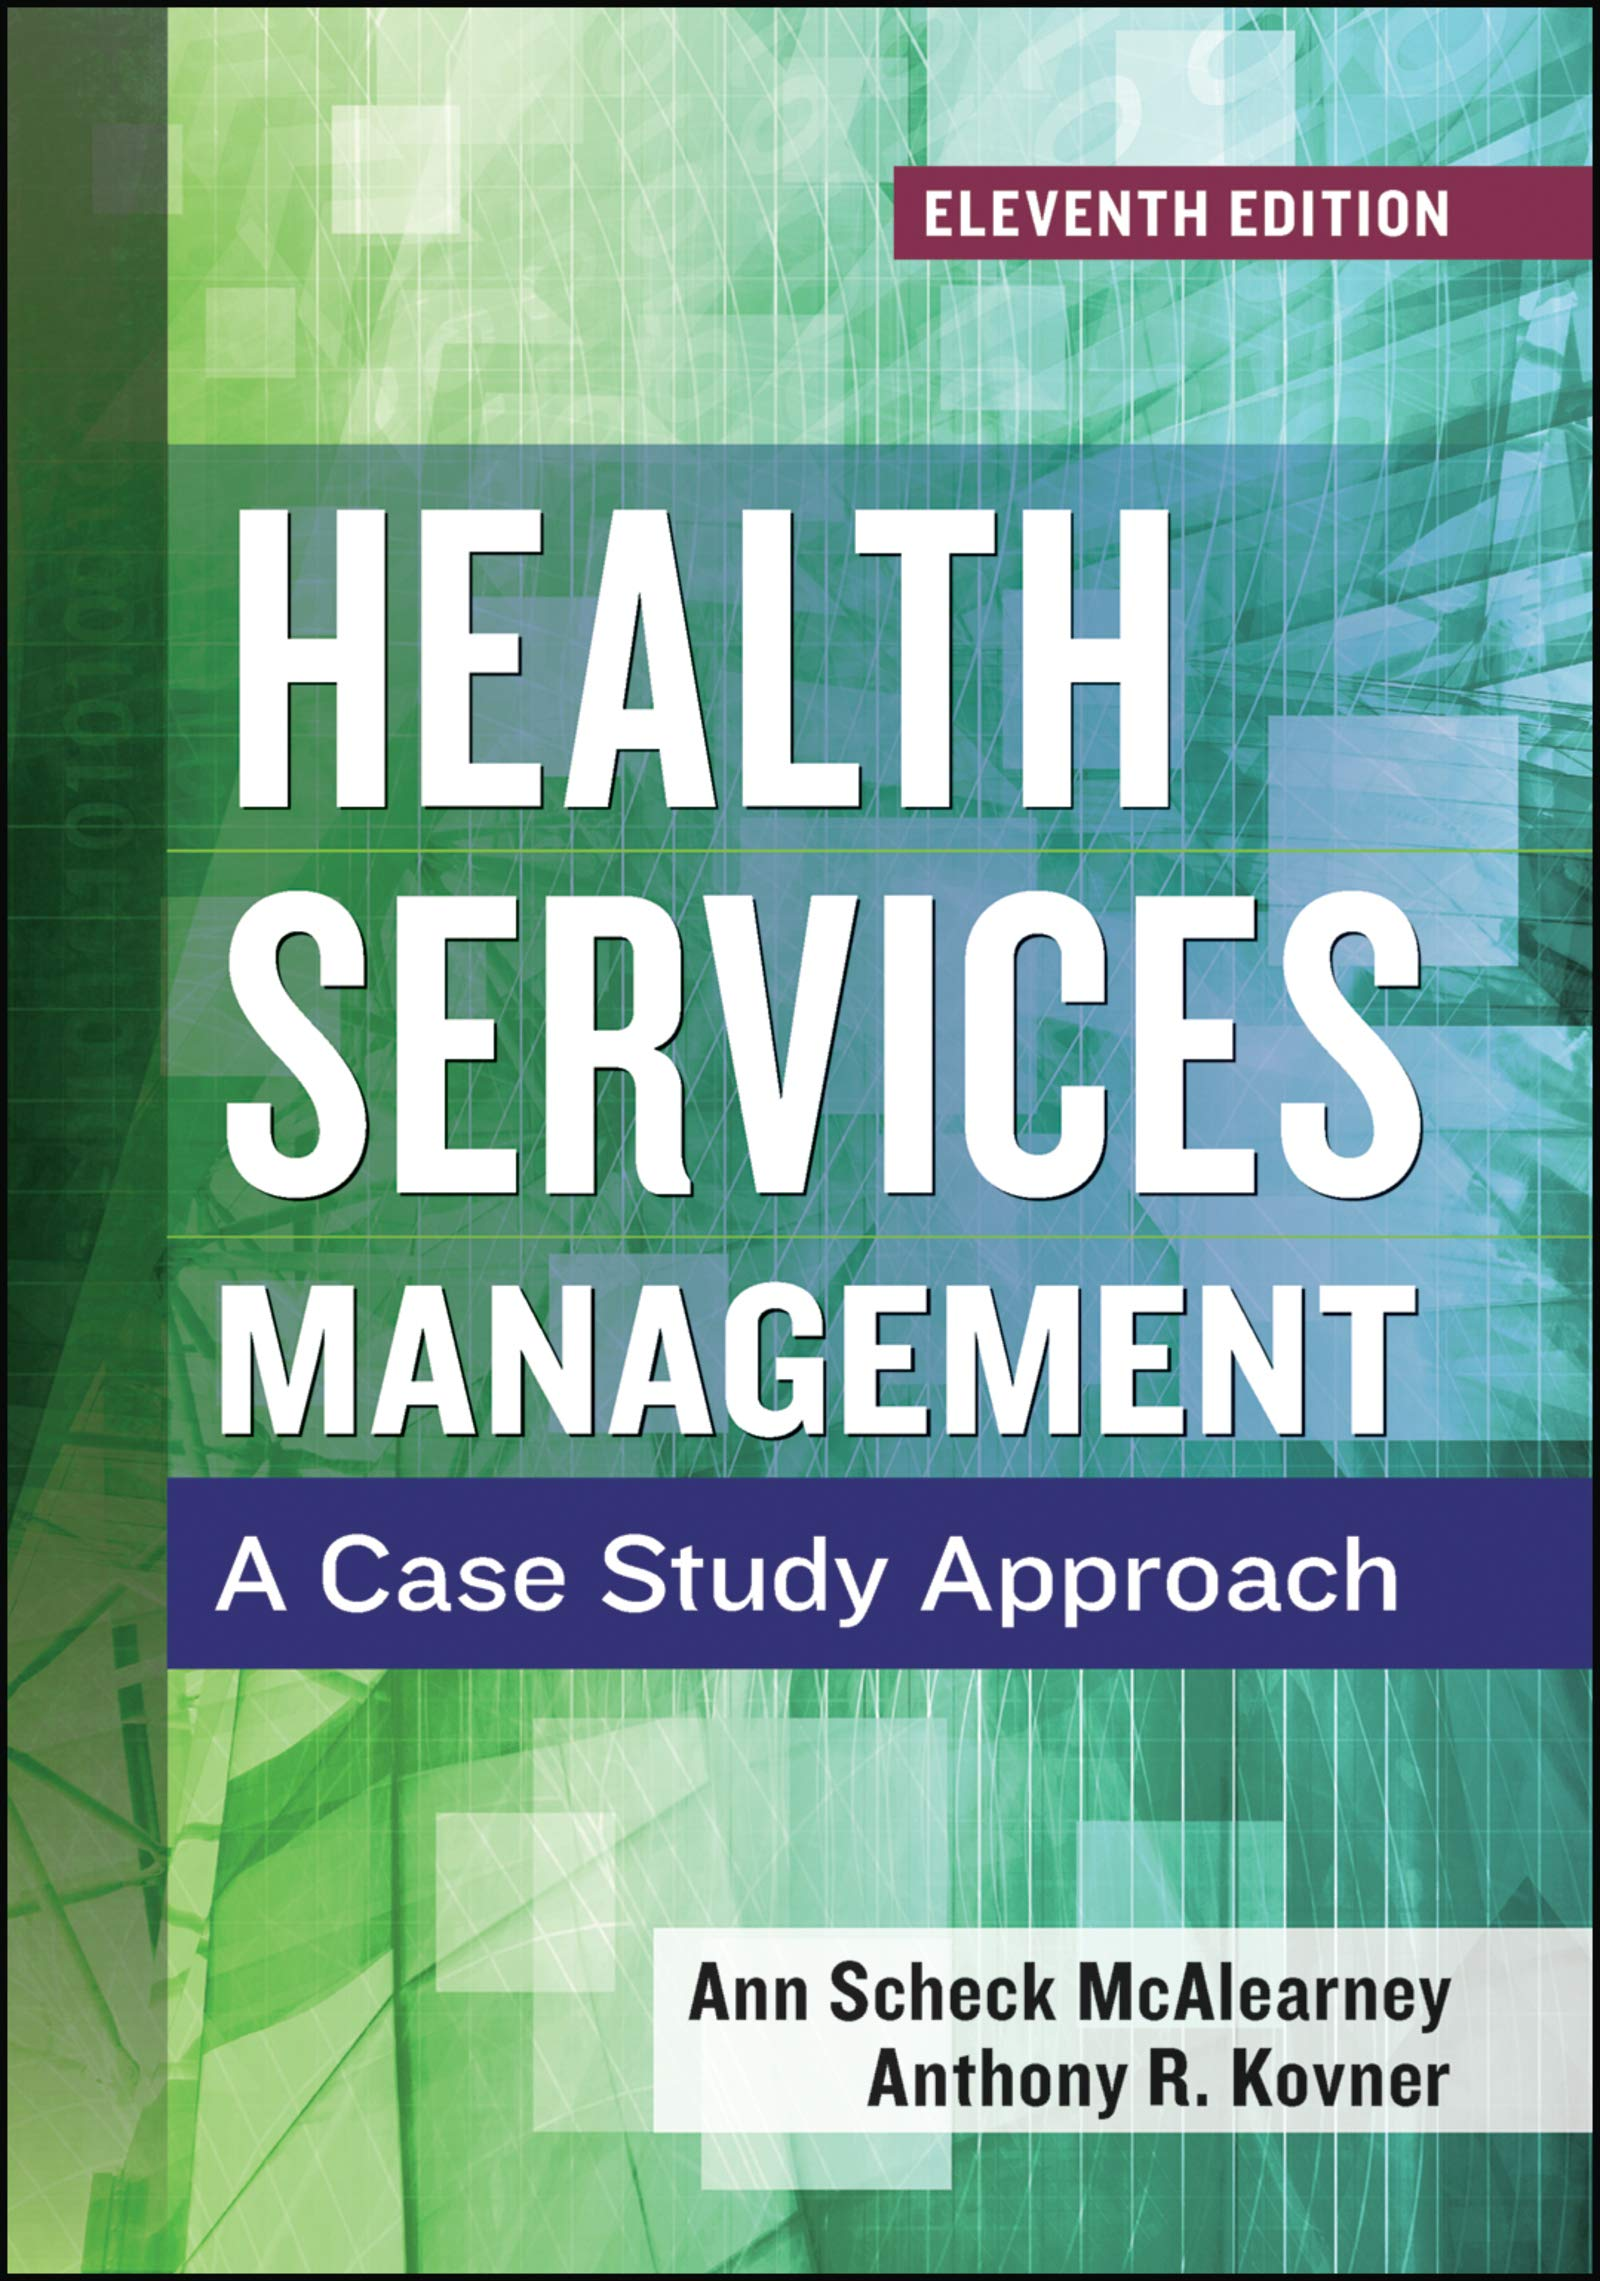 Image OfHealth Services Management: A Case Study Approach, Eleventh Edition (AUPHA/HAP Book)